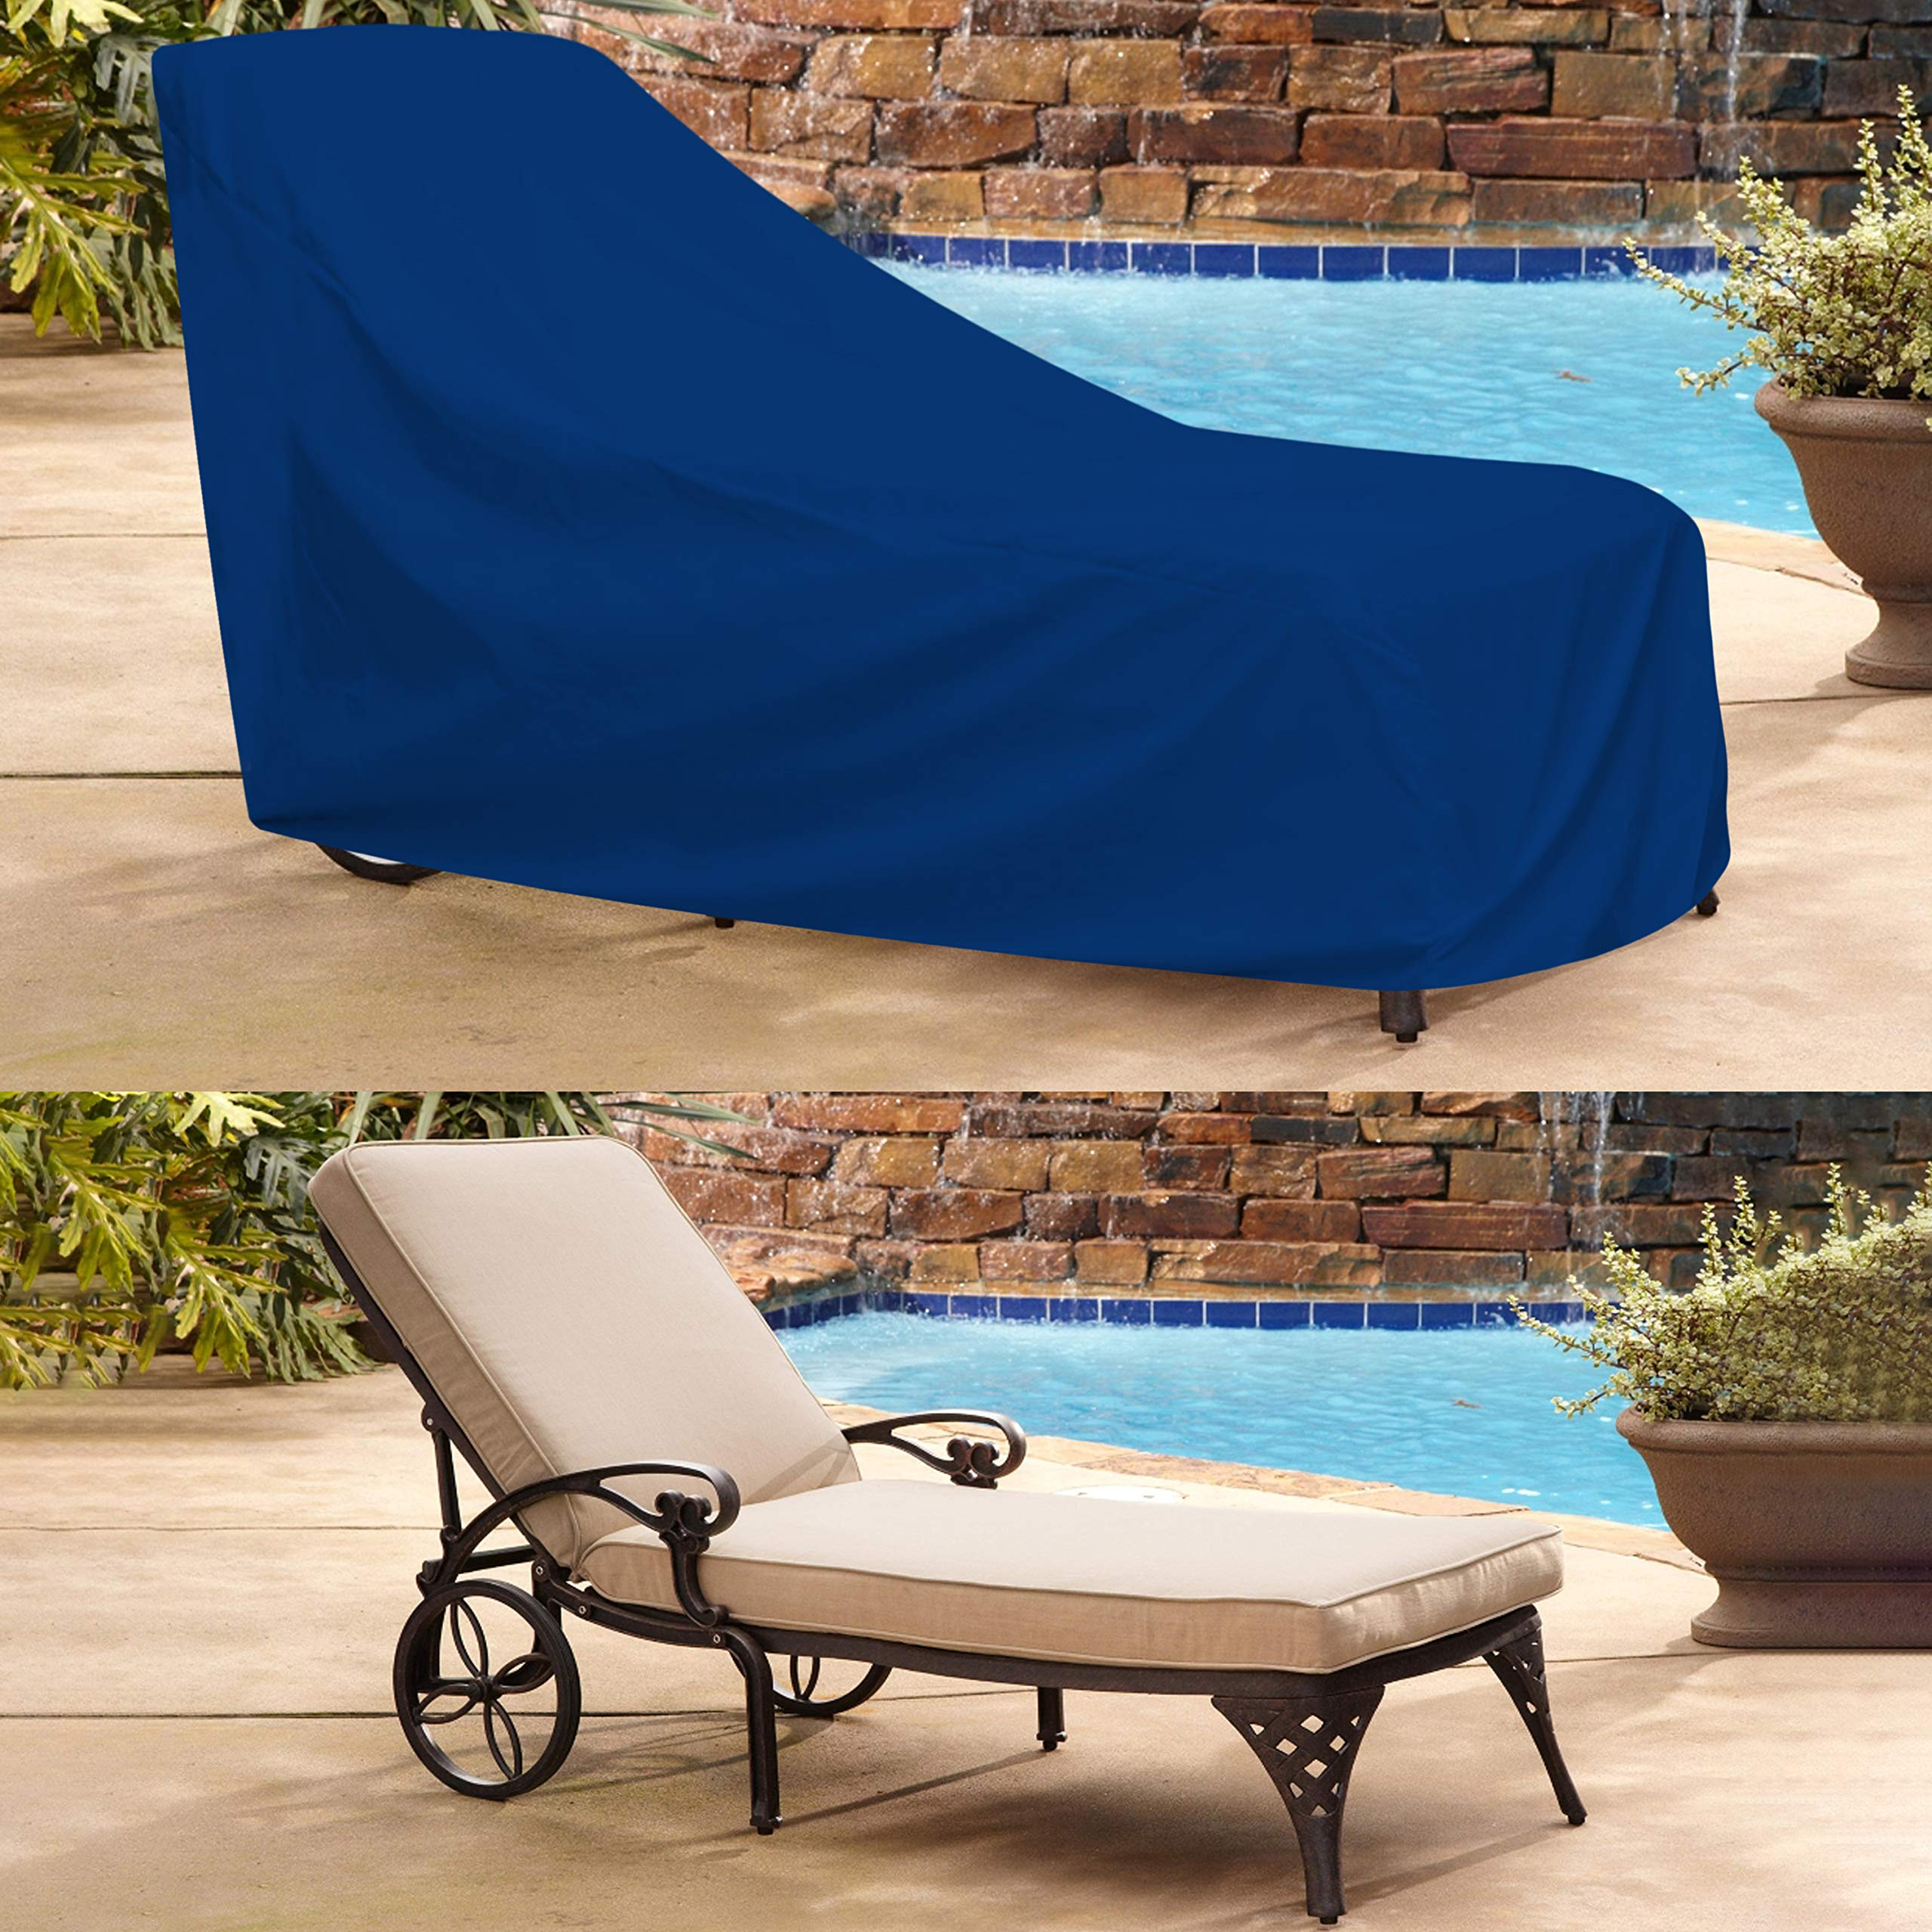 COVERS & ALL Chaise Lounge Cover 18 Oz Waterproof - 100% UV & Weather Resistant Outdoor Chaise Cover PVC Coated with Air Pockets and Drawstring for Snug Fit (80W x 34D x 32H, Blue) by COVERS & ALL (Image #6)